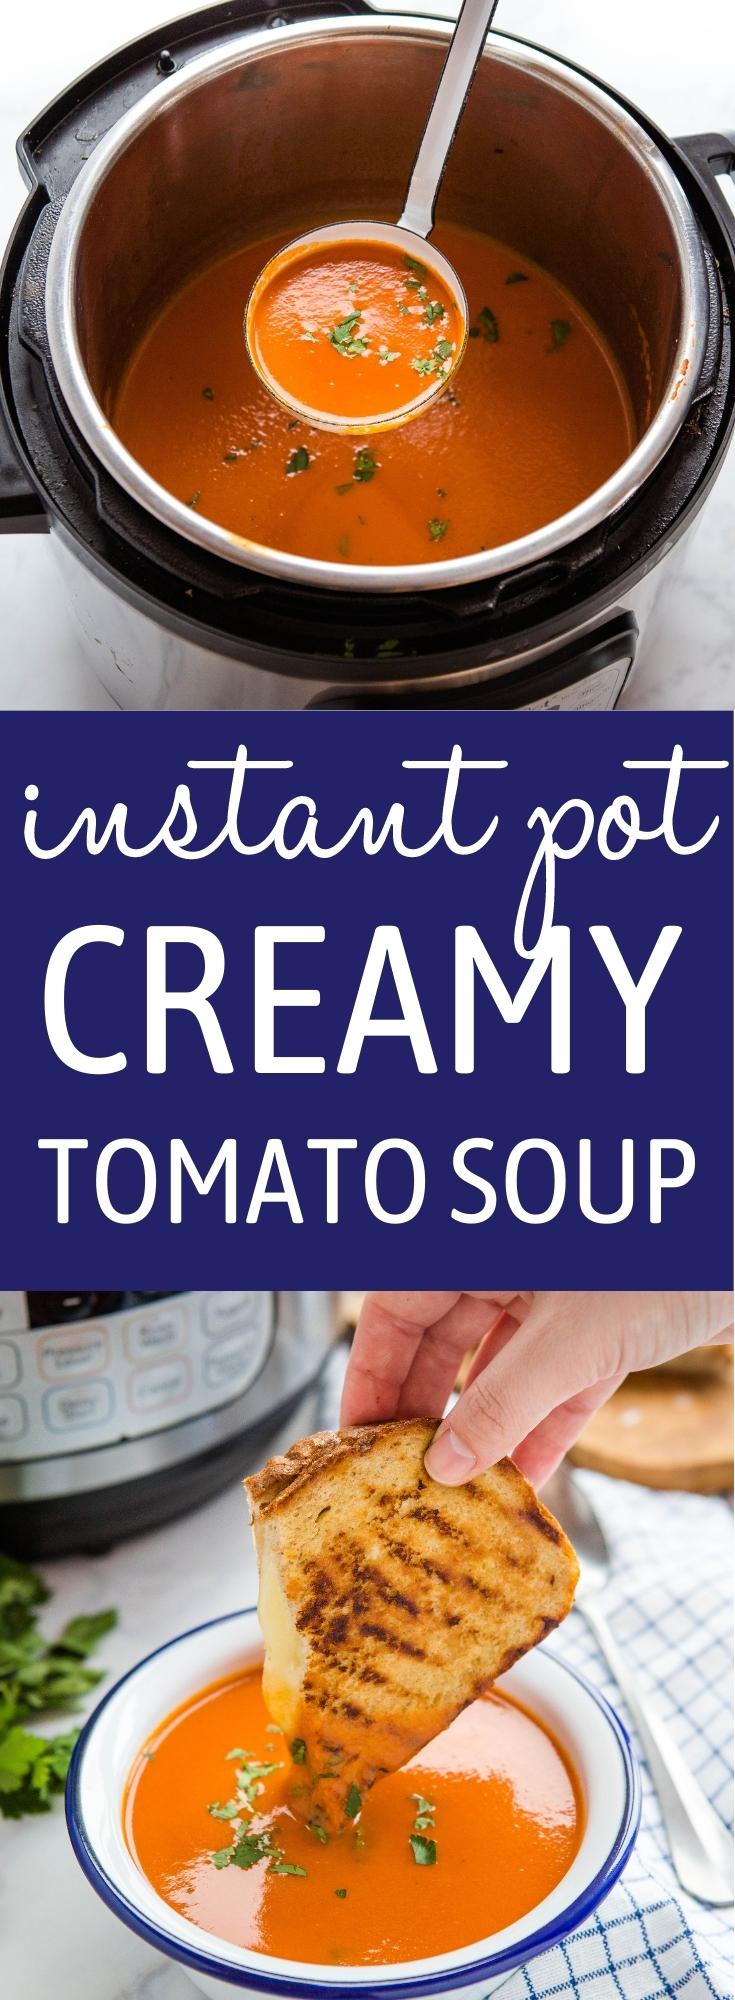 This Instant Pot Creamy Tomato Soup is the perfect easy soup recipe made with basic pantry ingredients! It's creamy, smooth and it's easy to make in 20 minutes! Recipe from thebusybaker.ca! #instantpottomatosoup #souprecipe #instantpot #homemadesoup #homemadetomatosoup #tomatosoup via @busybakerblog